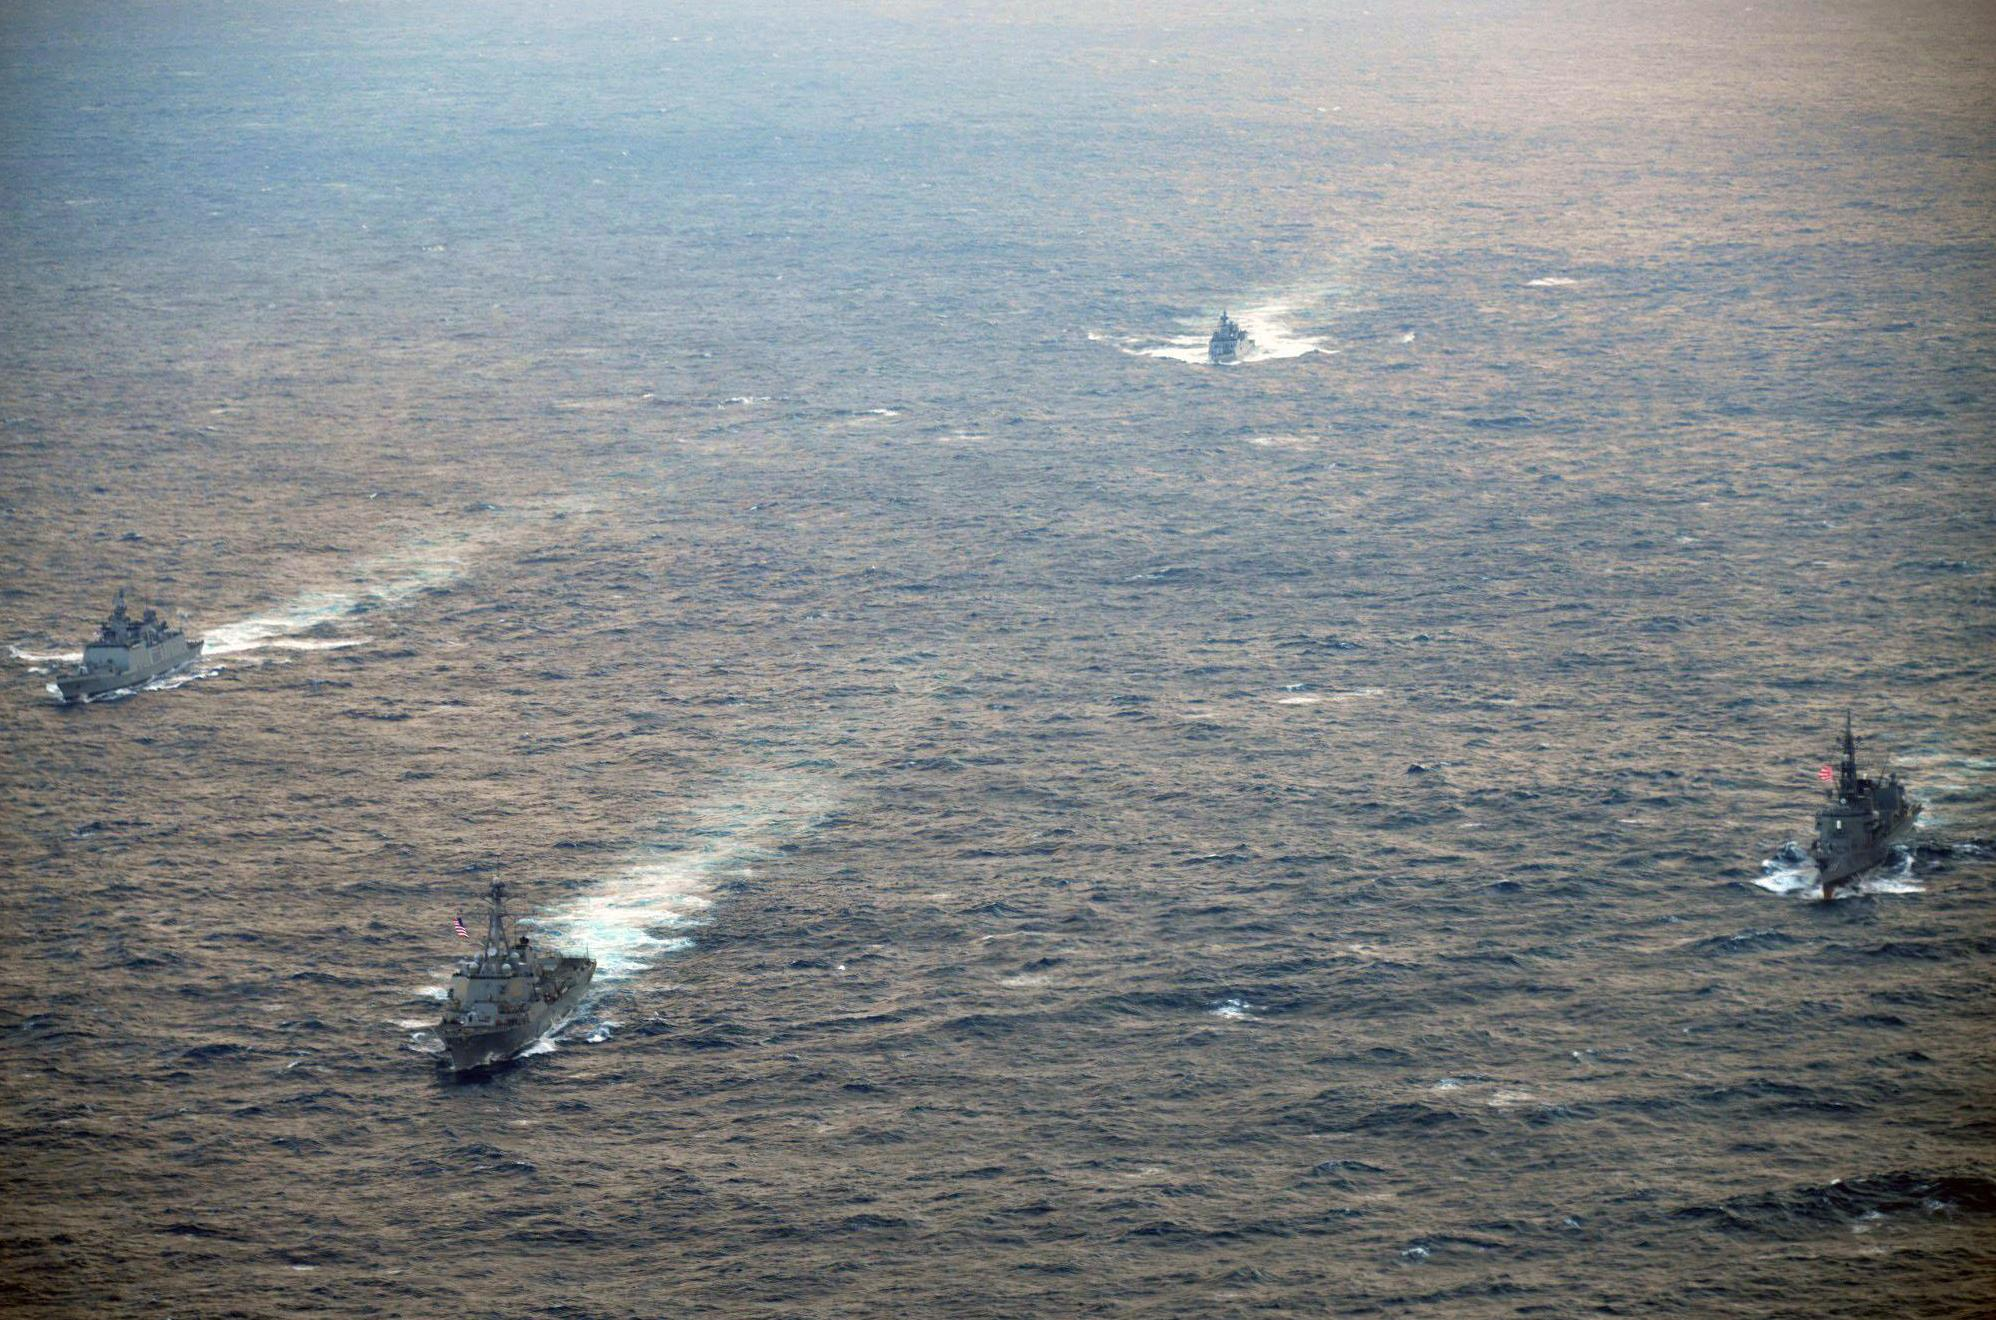 The Maritime Self-Defense Force destroyer Inazuma (right)) participates in a trilateral military exercise with the United States and India in the Sea of Japan on Saturday. | MSDF / VIA KYODO